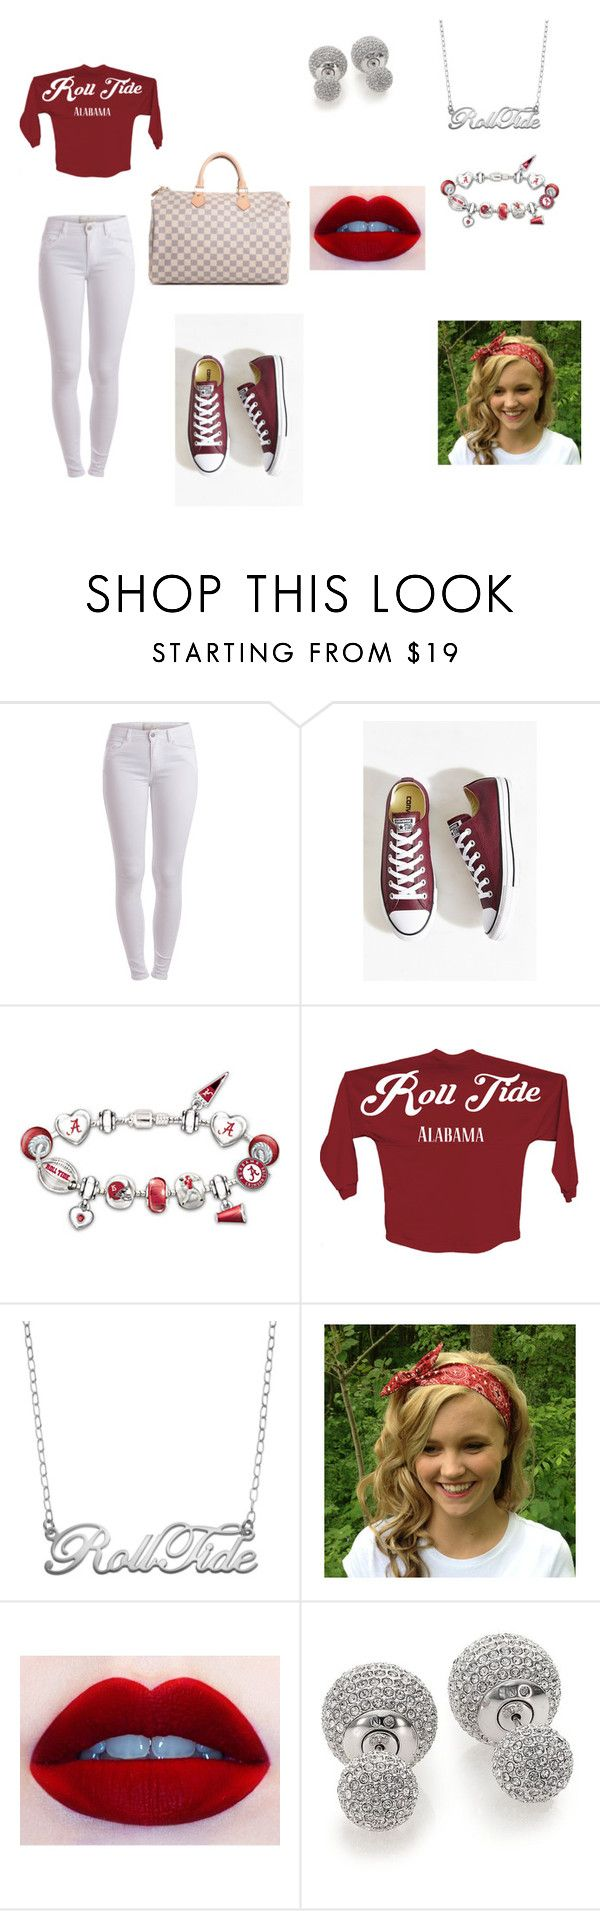 """RollTide_Alabama"" by glitzy-metallic-acc ❤ liked on Polyvore featuring Pieces, Converse, The Bradford Exchange, Fiora, Adriana Orsini and Louis Vuitton"